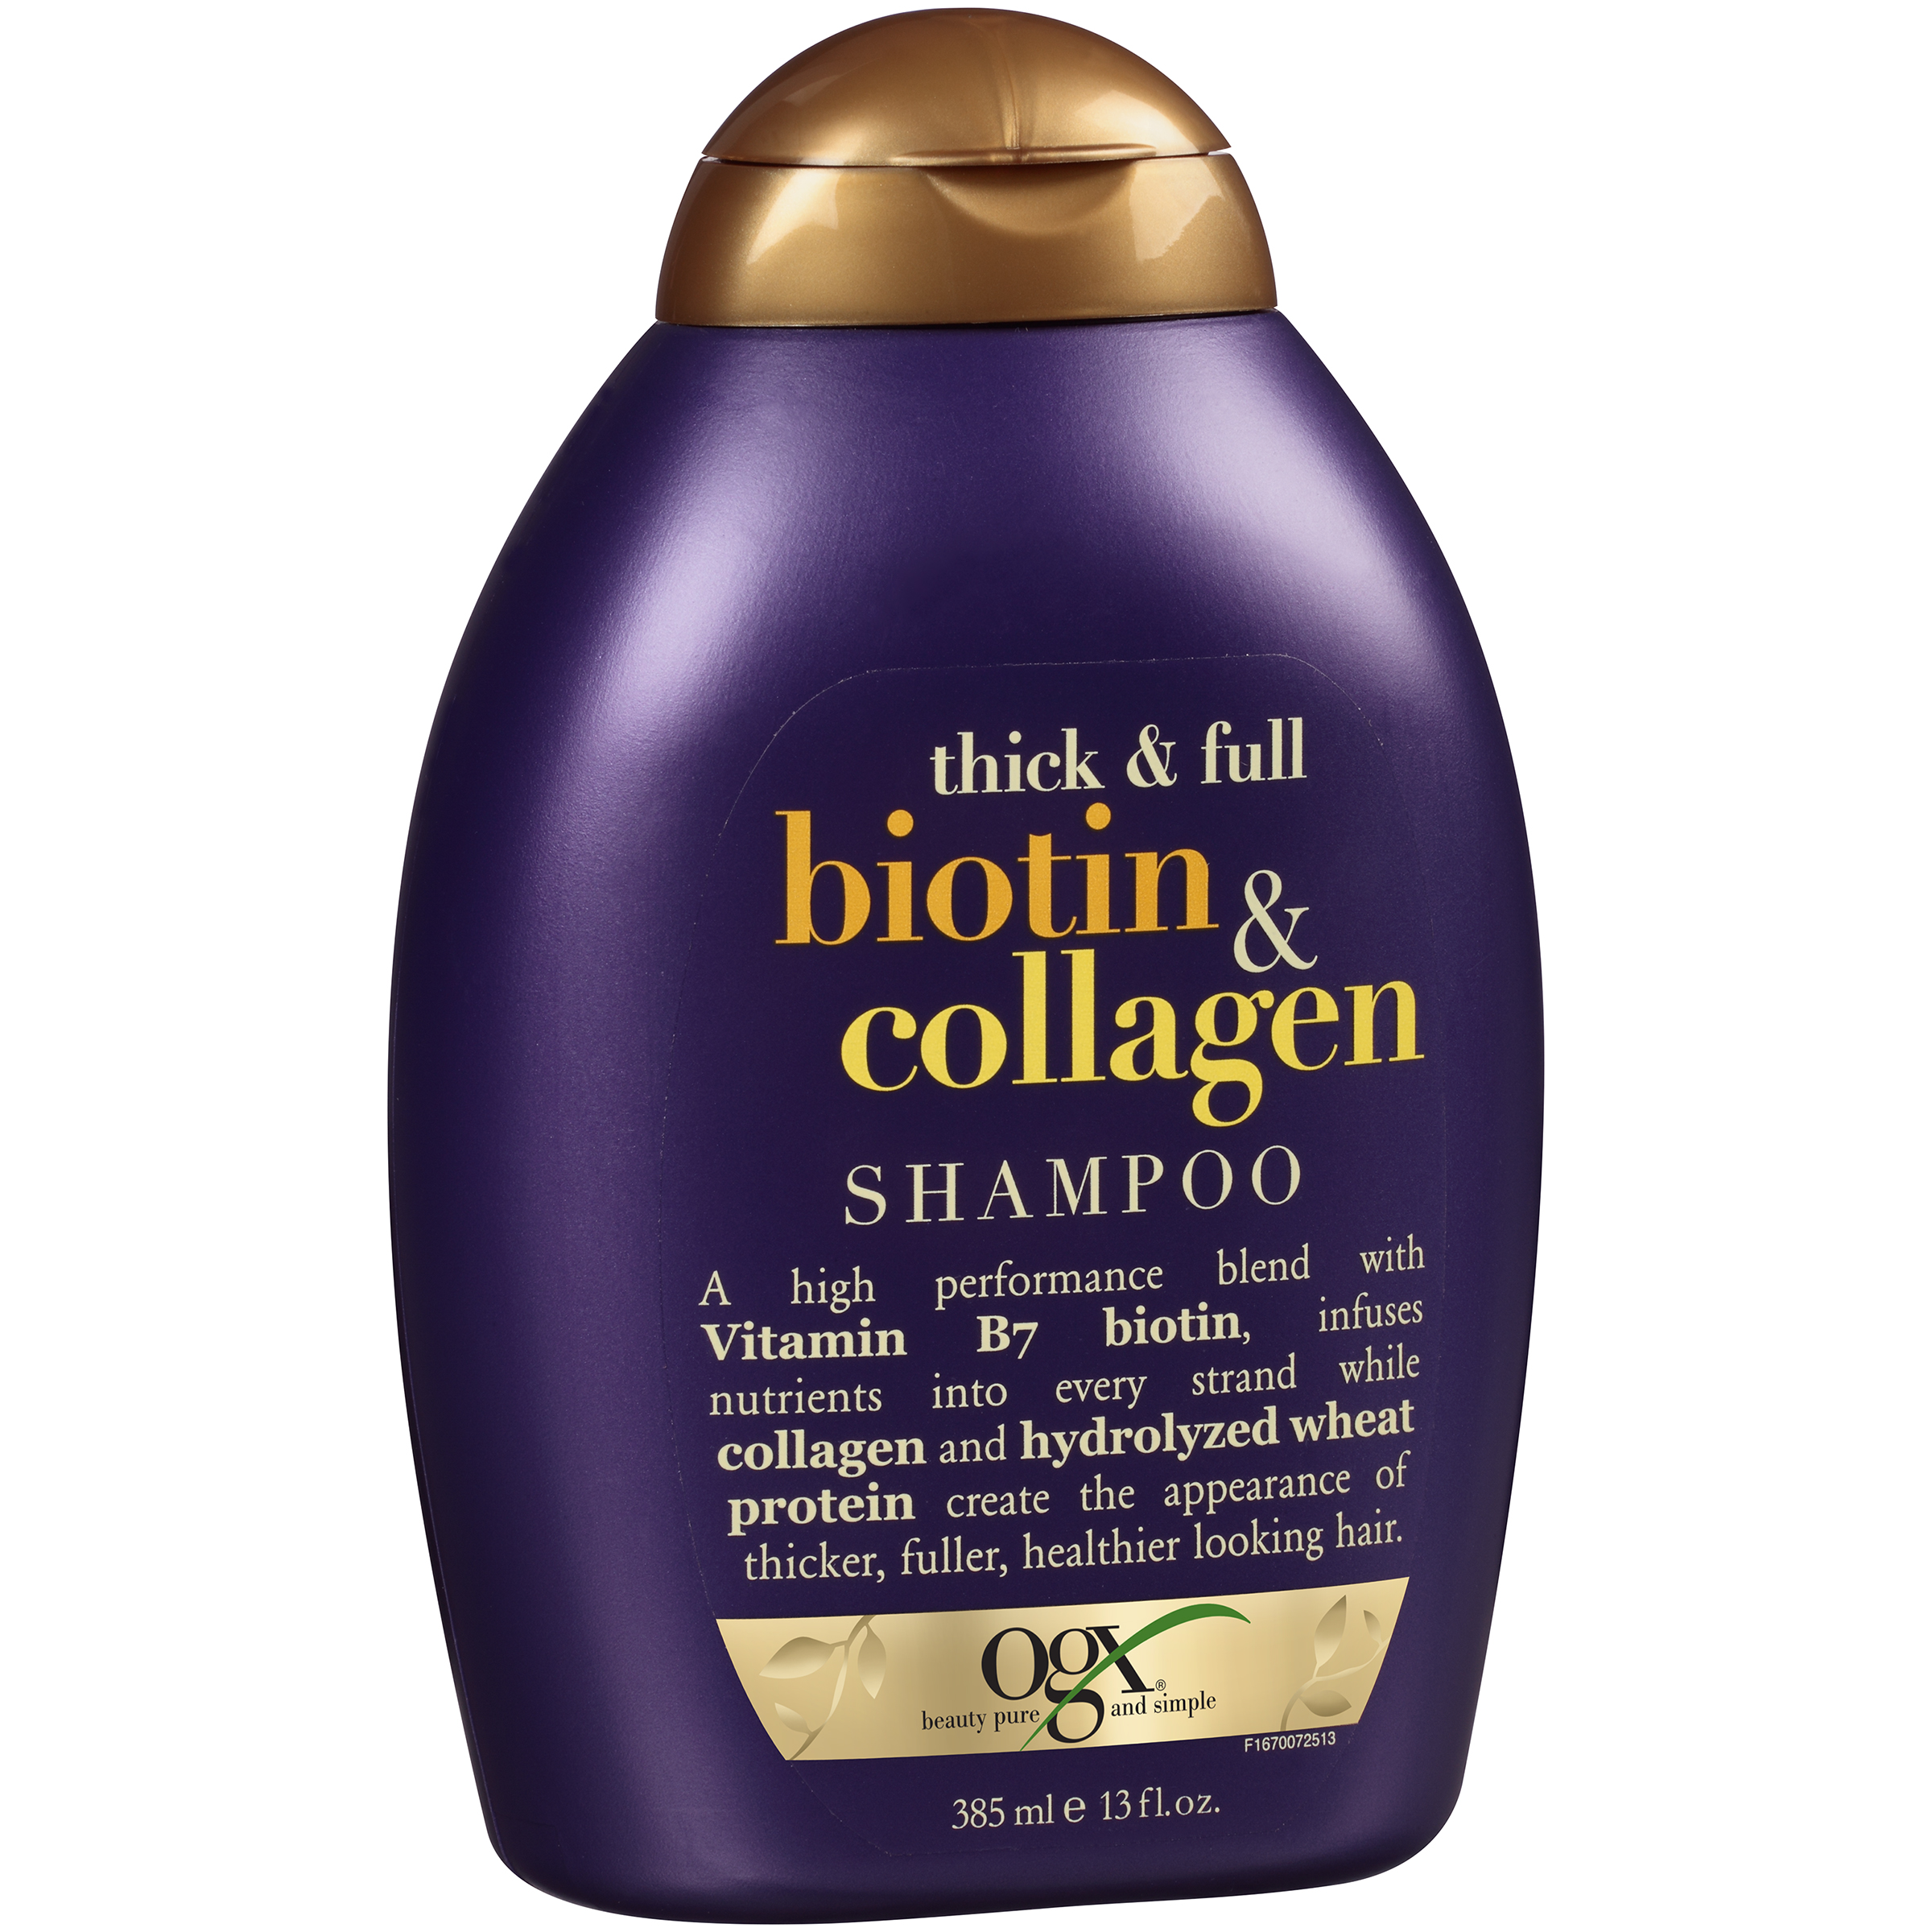 Ogx�� Thick & Full Biotin & Collagen Shampoo 13 fl. oz. Squeeze Bottle